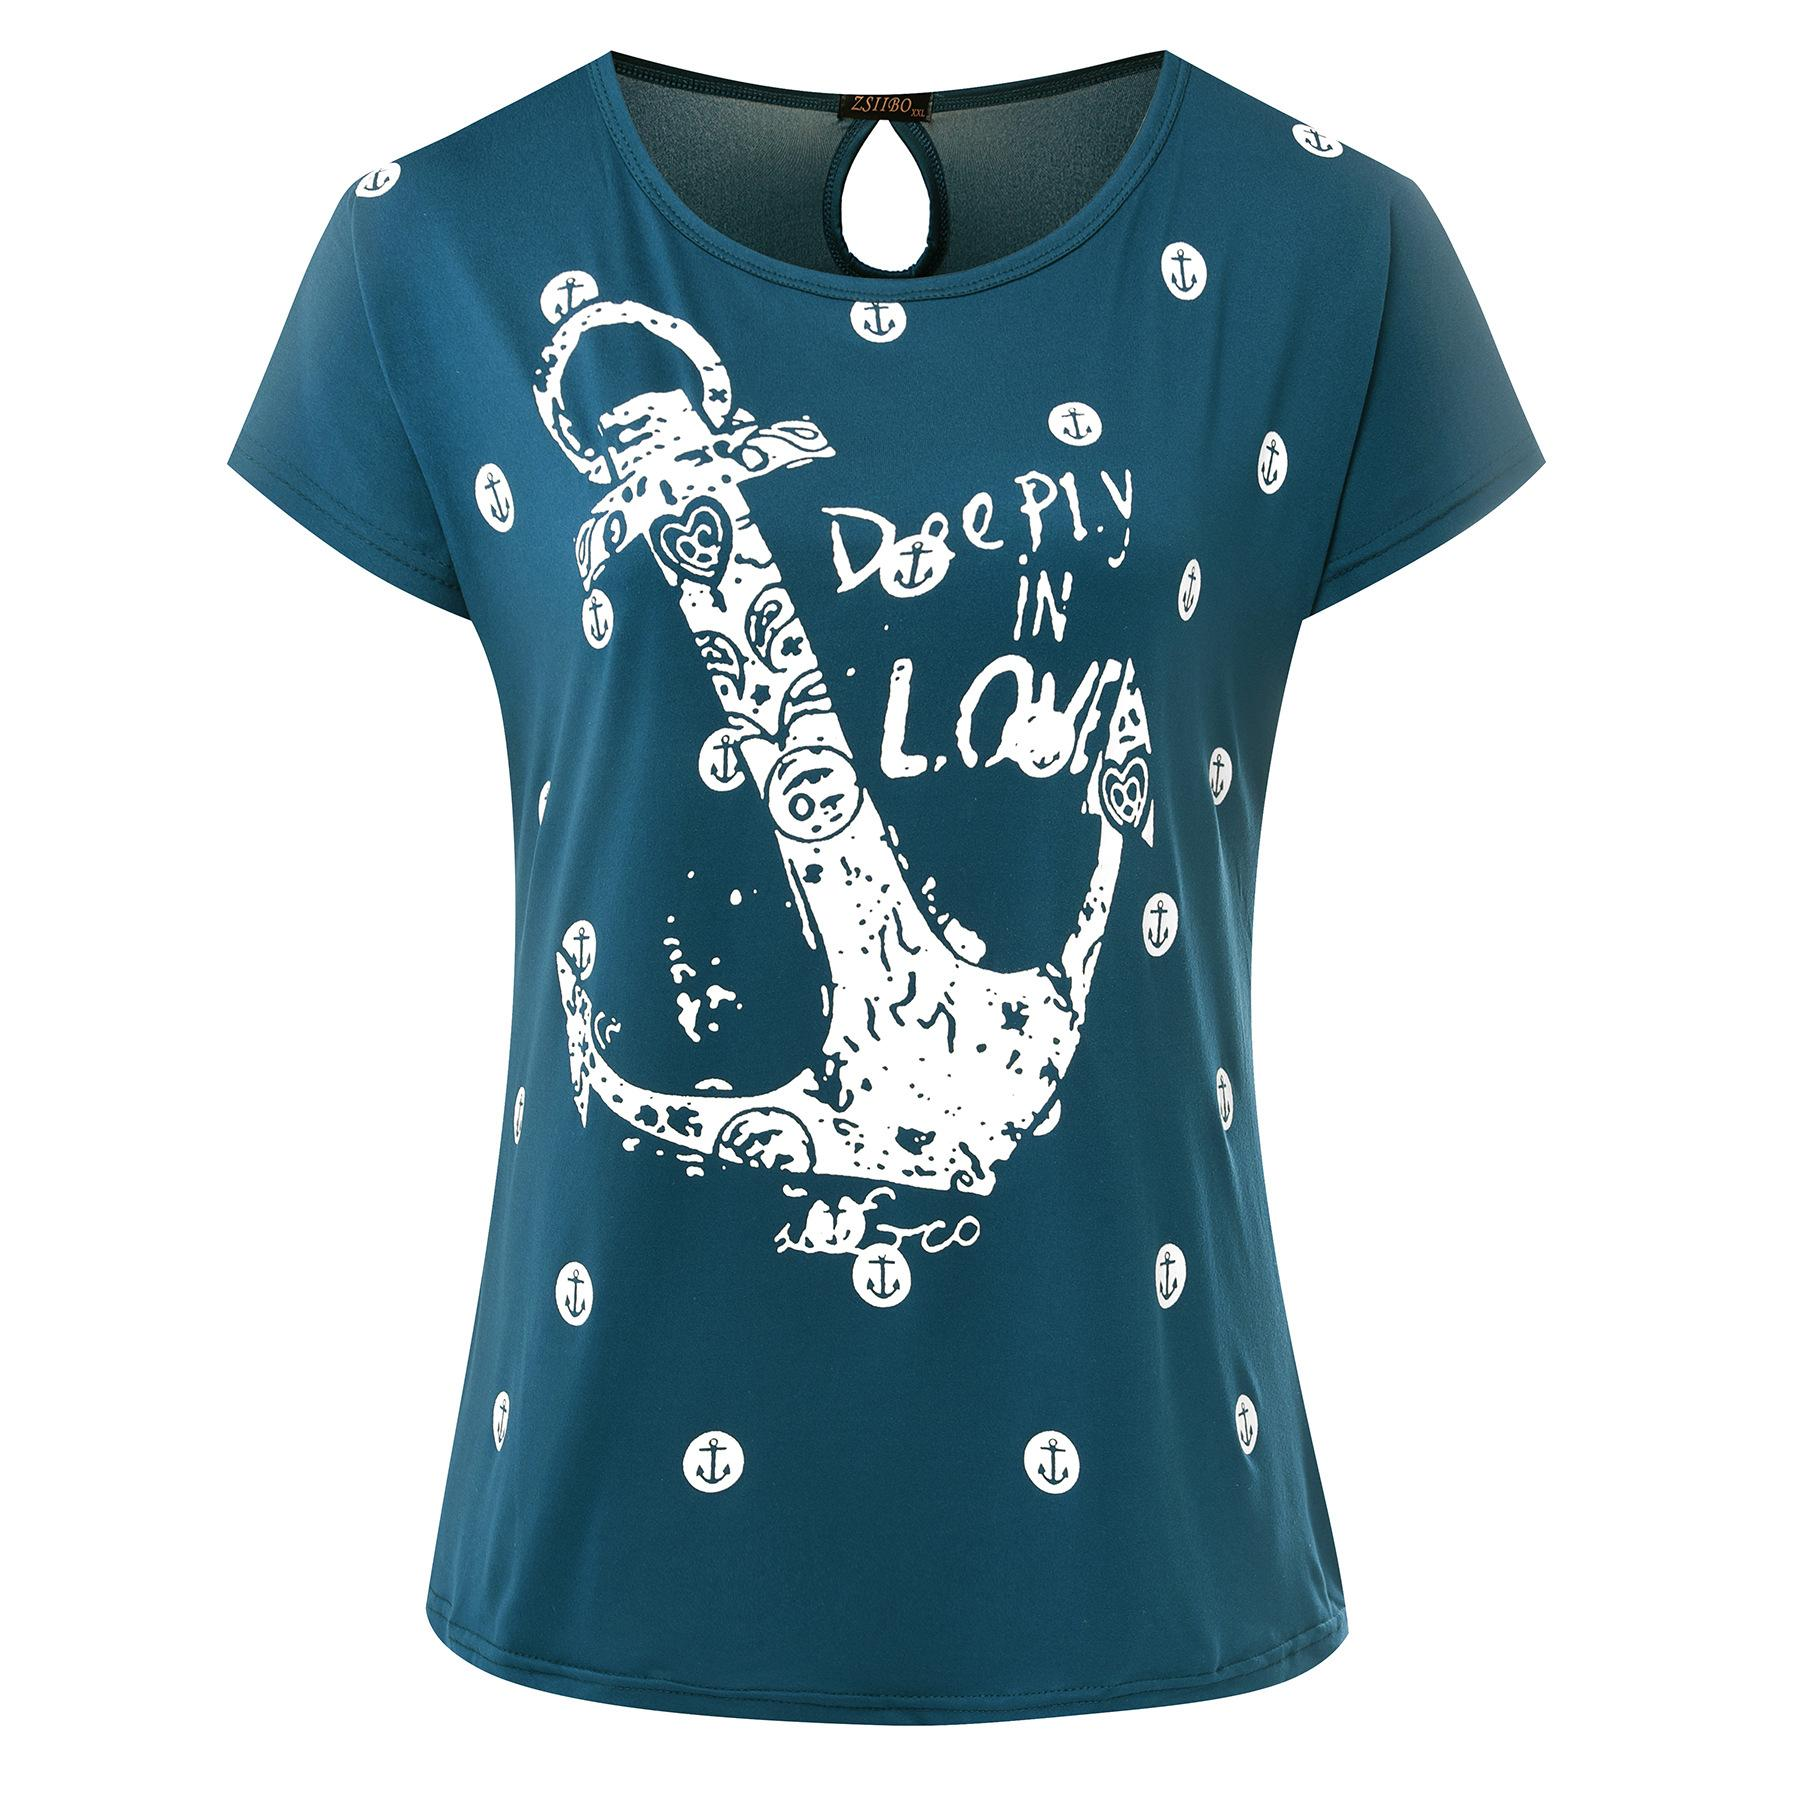 10 Styles Boat Anchors Printed Women Crew Neck Loose Casual T Shirt Letter Print Short Sleeve Top Tees Size S-2XL